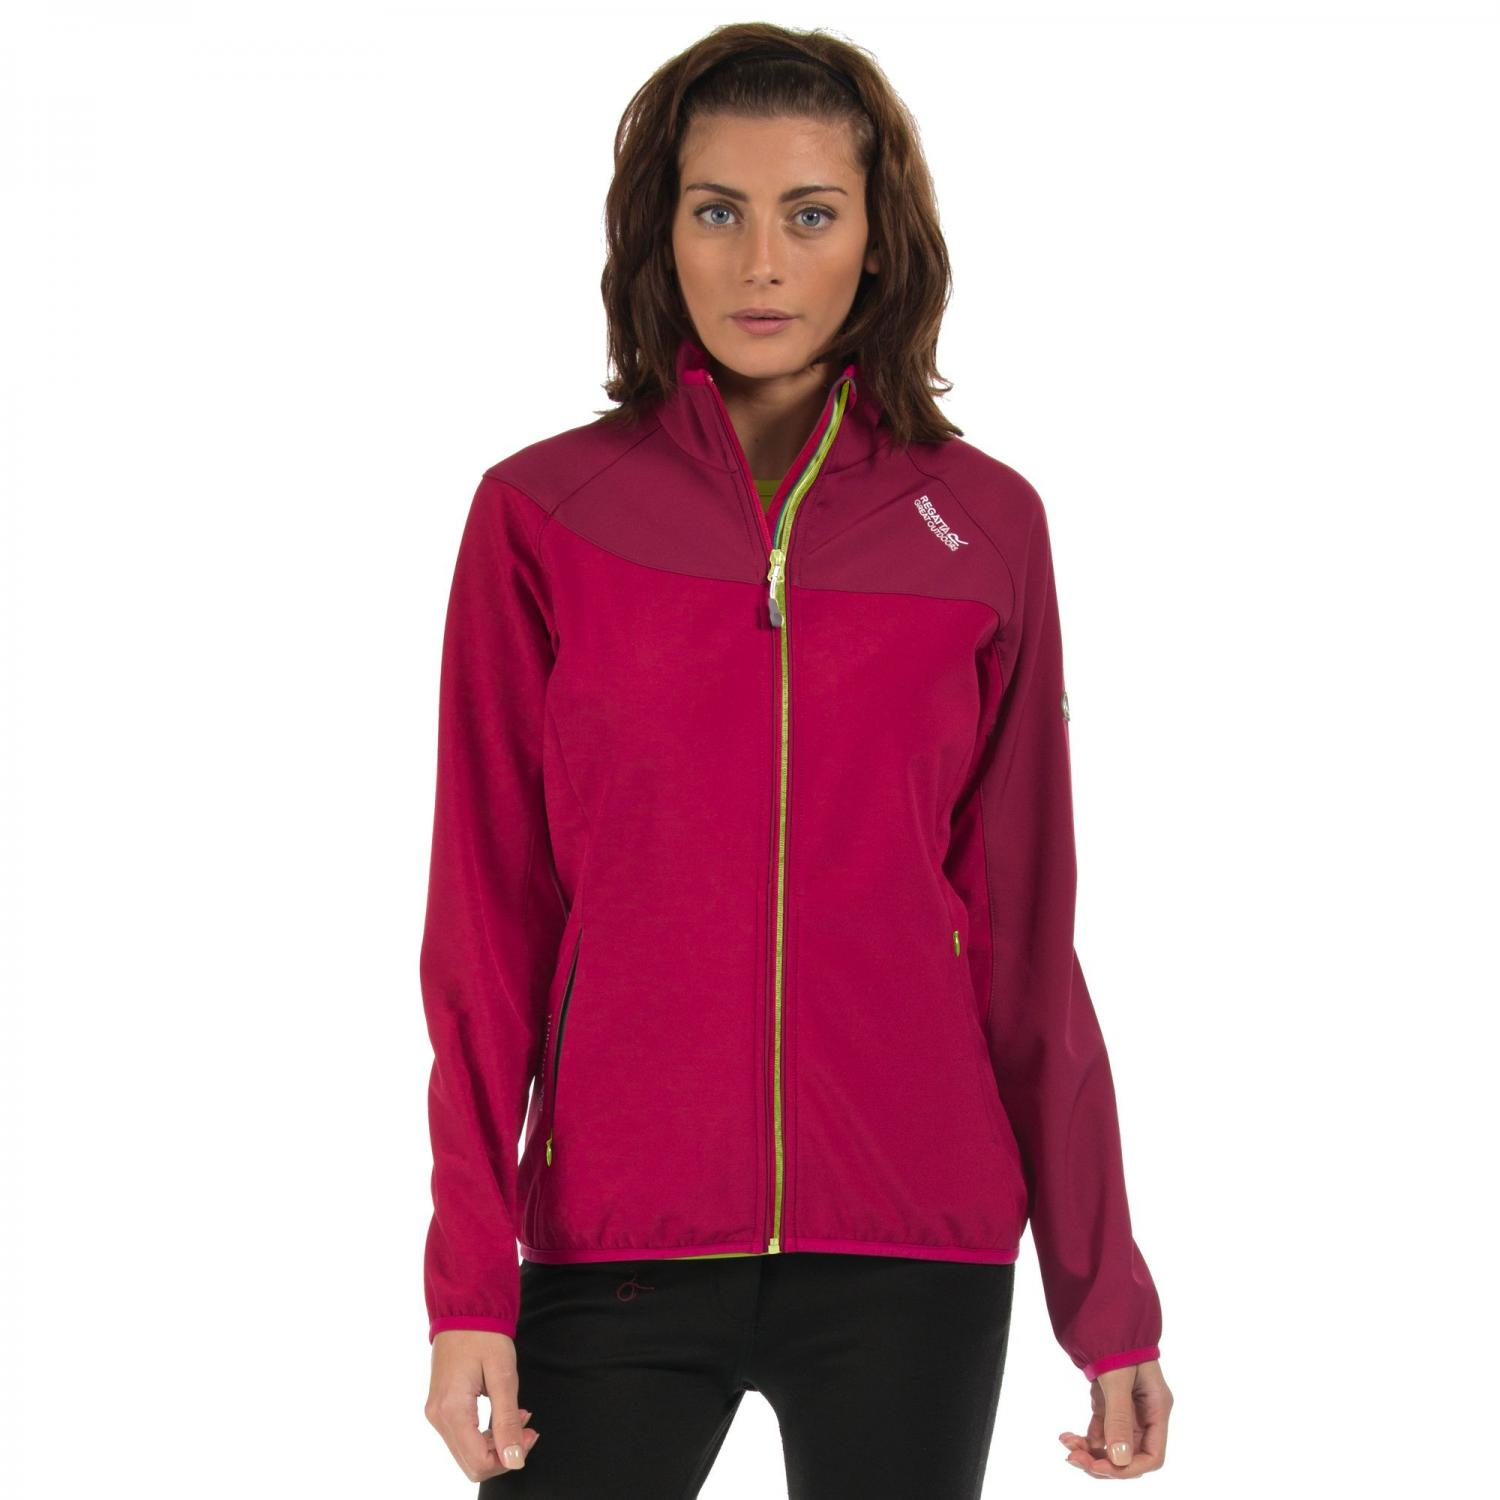 Clothing Accessories Womens Nebraska IV Softshell Jacket Beetroot Cerise